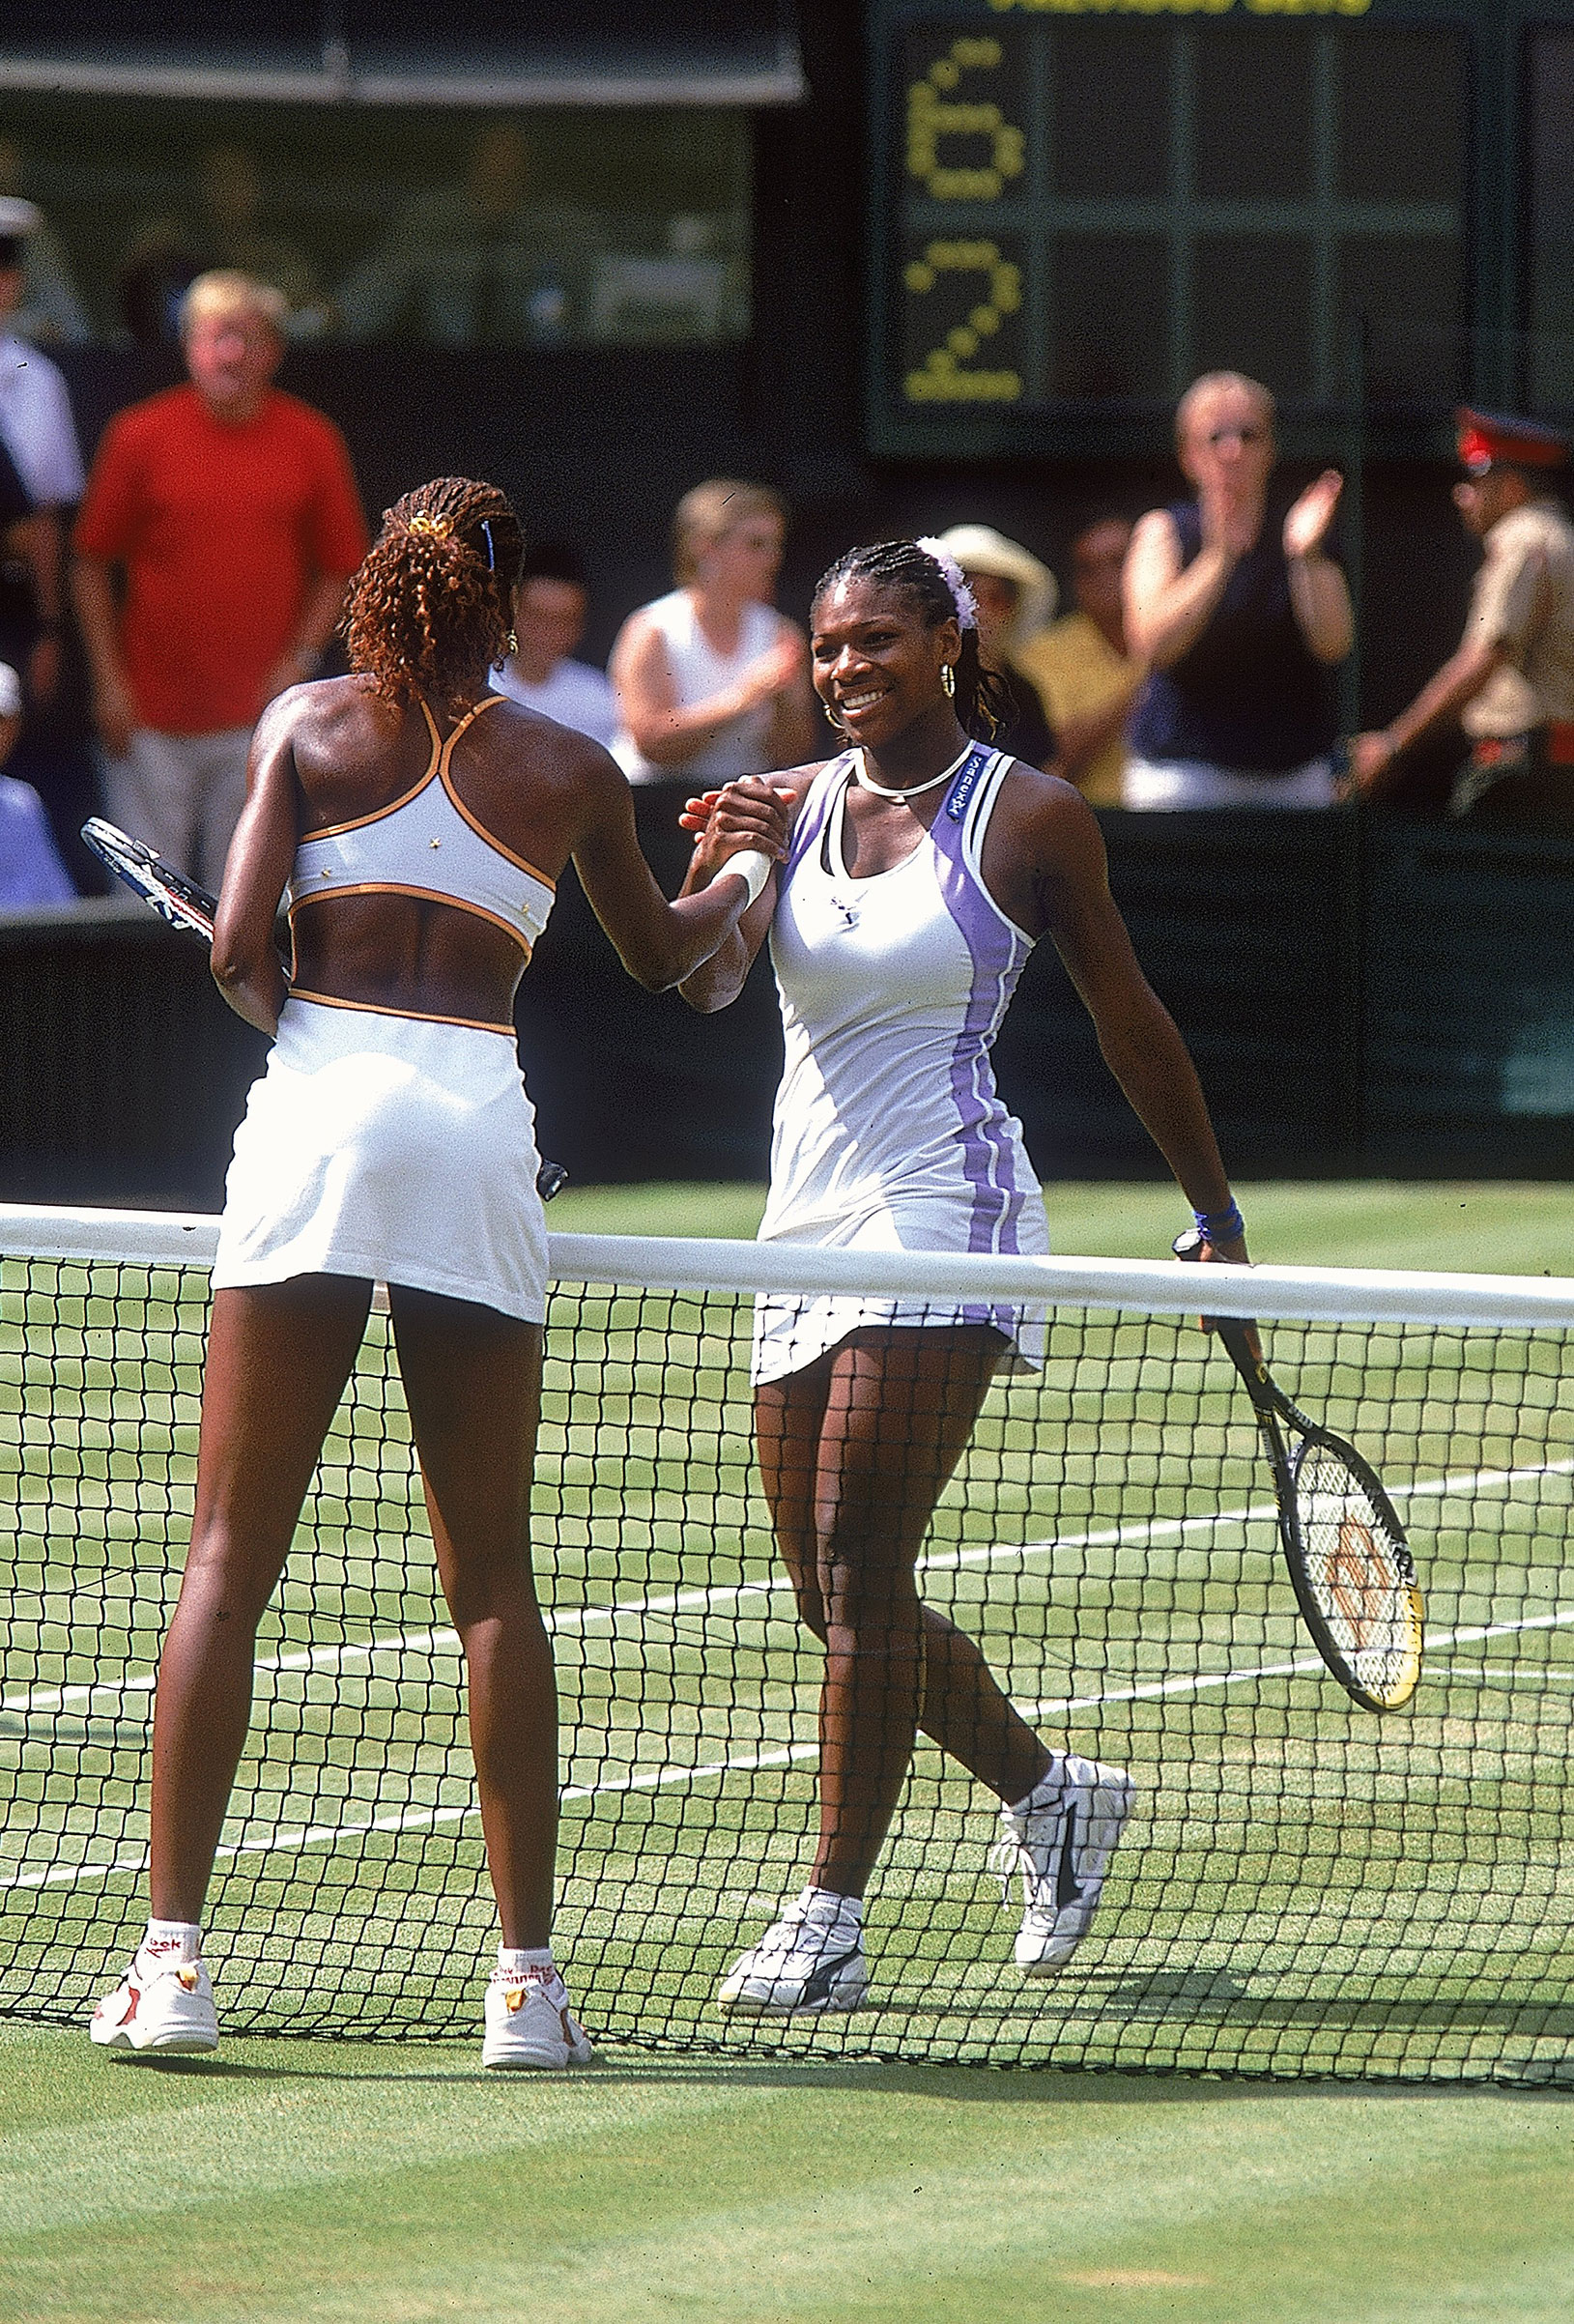 Serena Williams of the USA congratulates her sister Venus after losing to her in the womens semi final at the Wimbledon Lawn Tennis Championship at the All England Lawn Tennis and Croquet Club, Wimbledon, London on Jul 6, 2000.